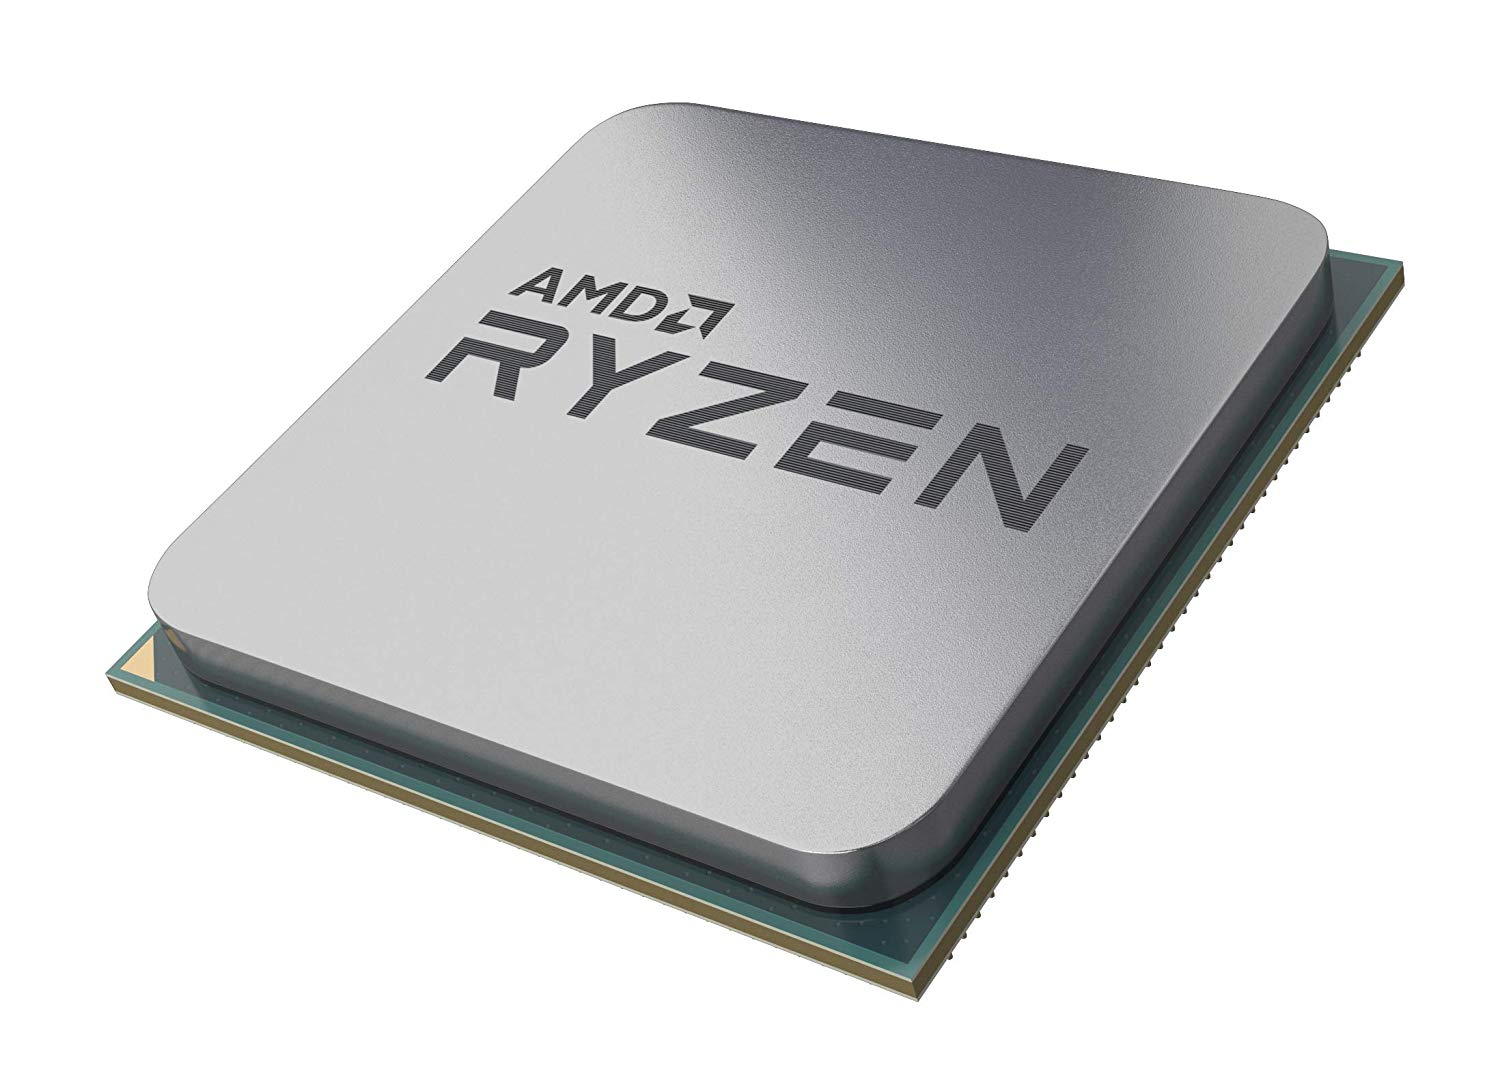 AMD Ryzen 3 2200G - AM4, Boxed